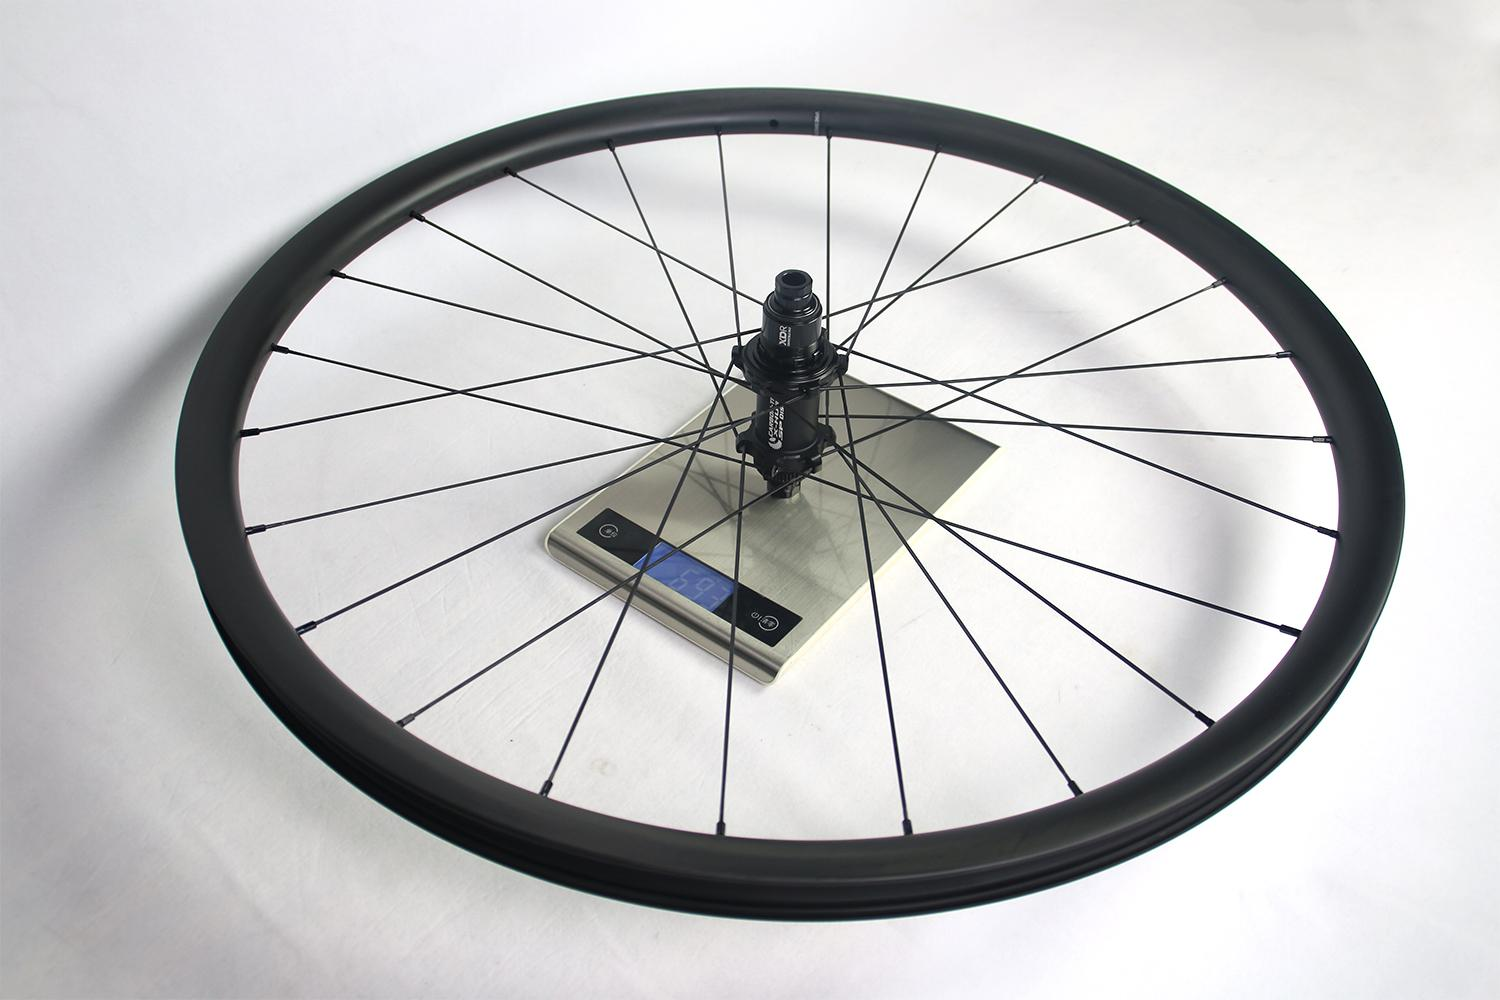 measured-weight-of-light-bicycle-ar28-rg92-rear-wheel-with-carbon-ti-x-hub-sp-disc